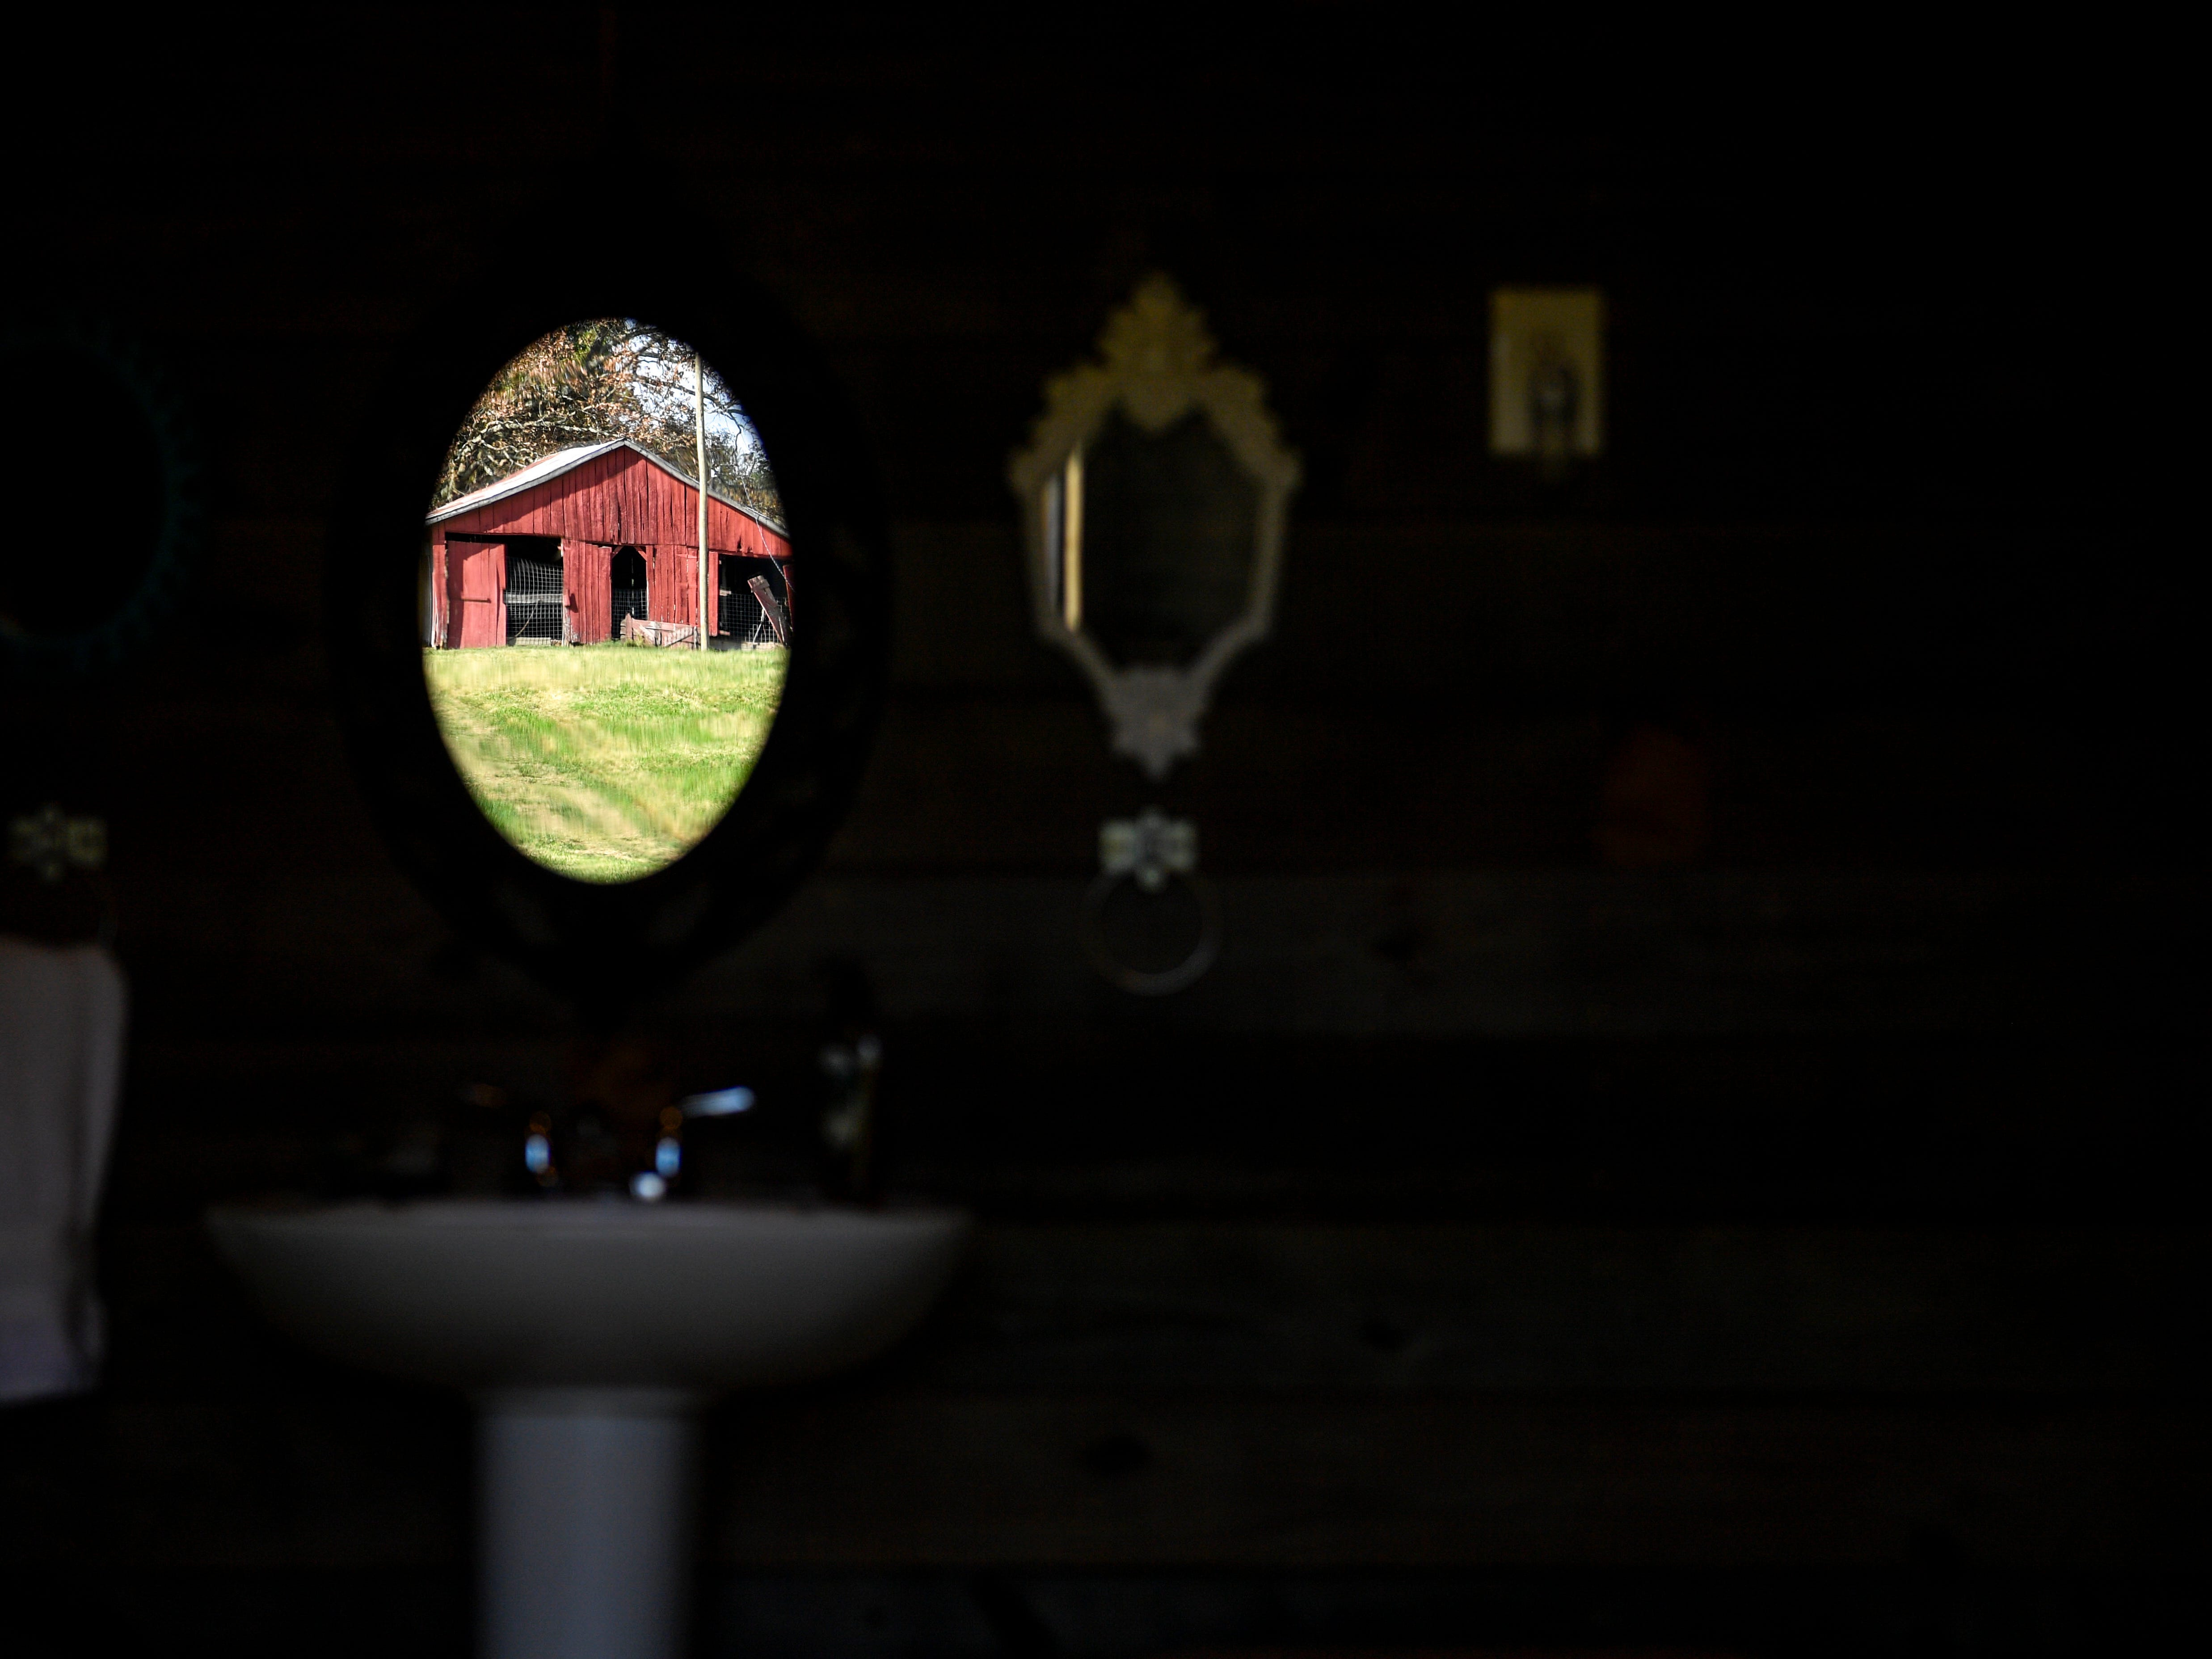 One of the barns on the Pitoni's farm can be seen in the reflection of a mirror in the outdoor bathroom at Stillwaters Farm in Henderson, Tenn., on Monday, Nov. 5, 2018.